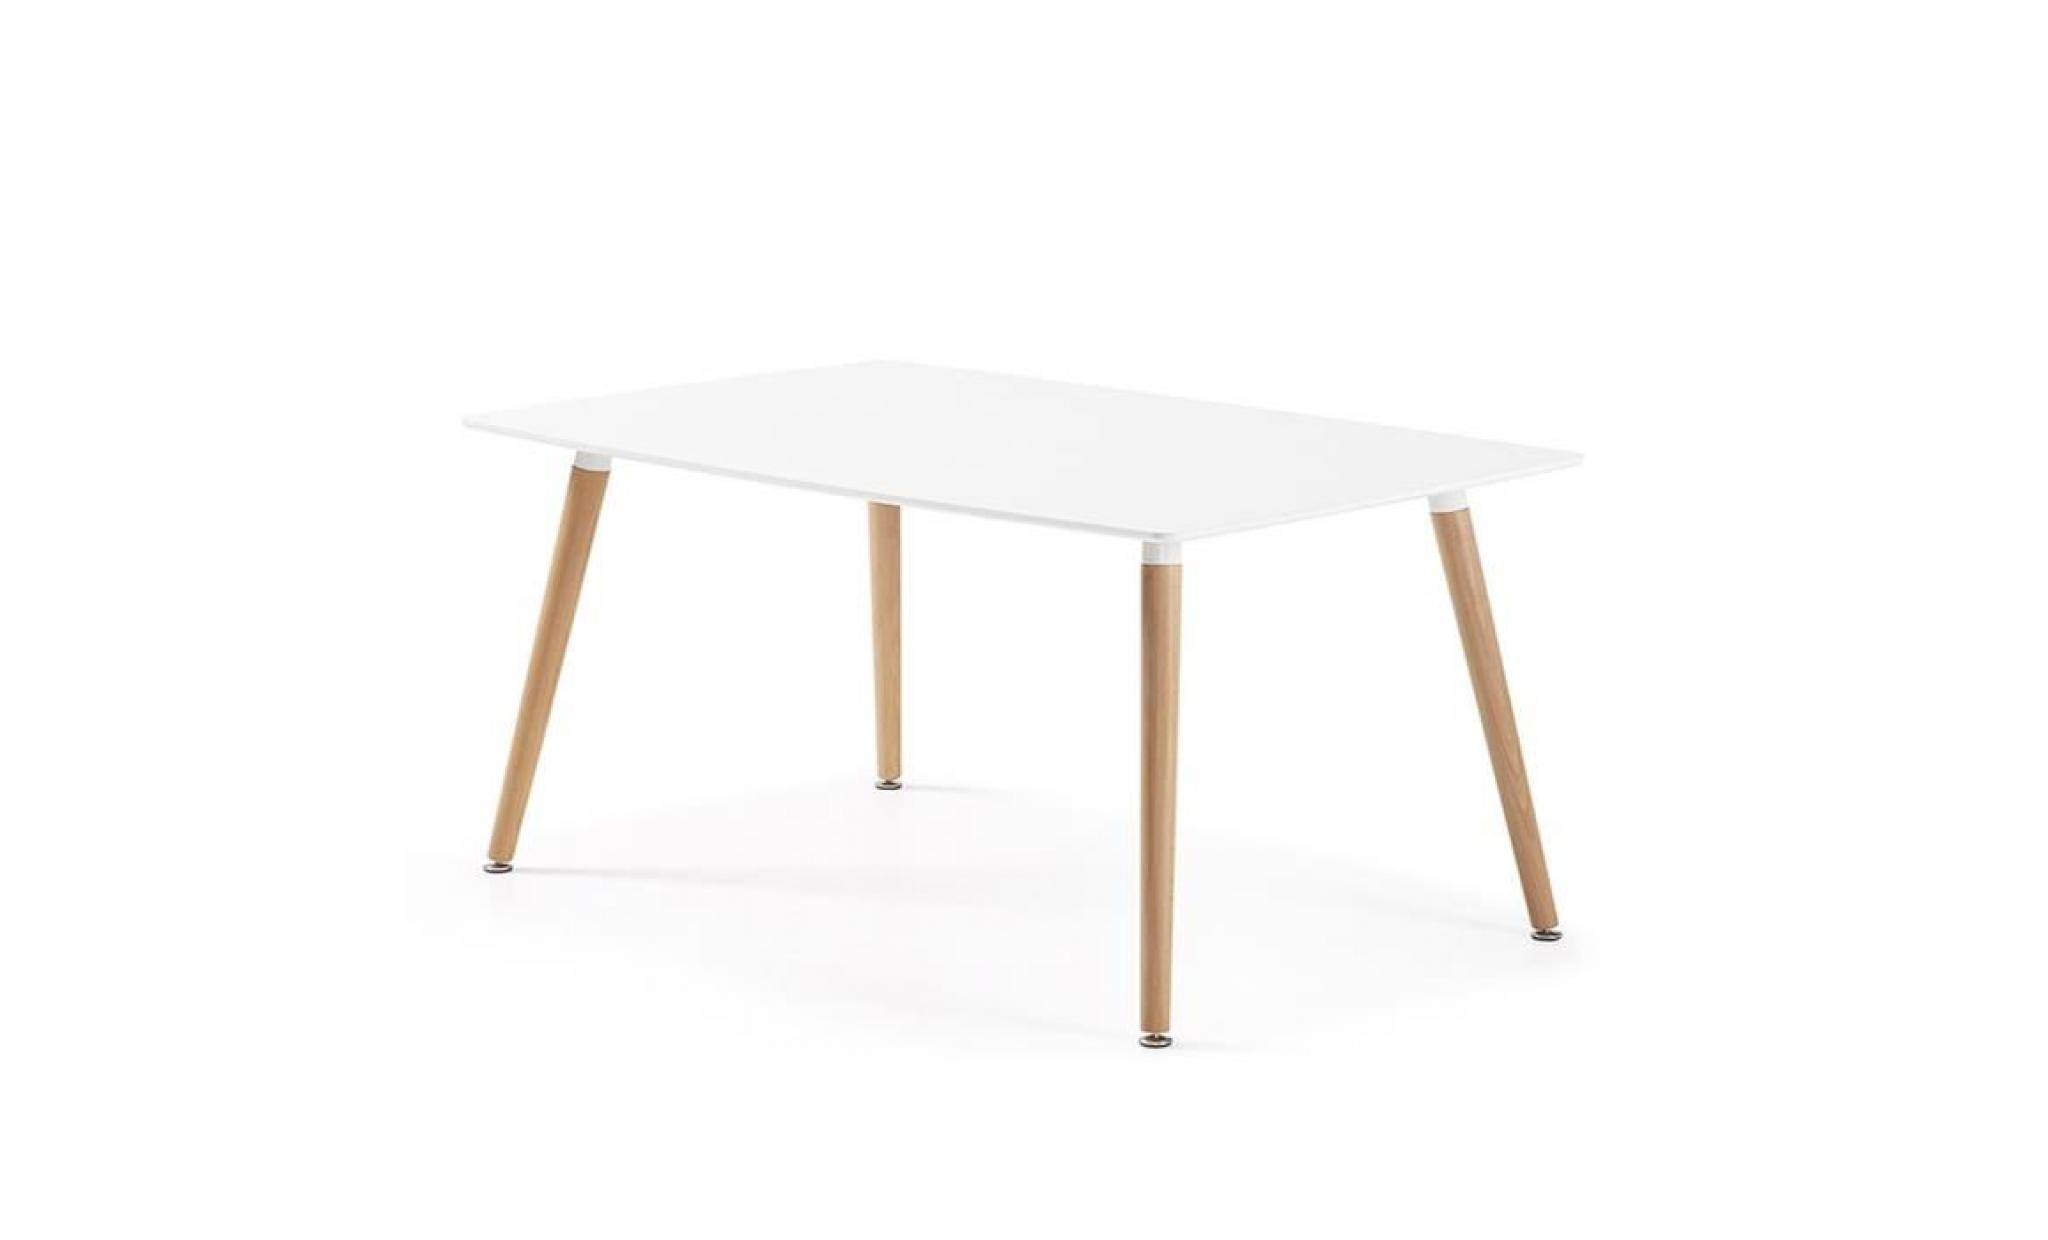 Table manger rectangulaire design blanche en bois laqu for Table a manger blanche et bois